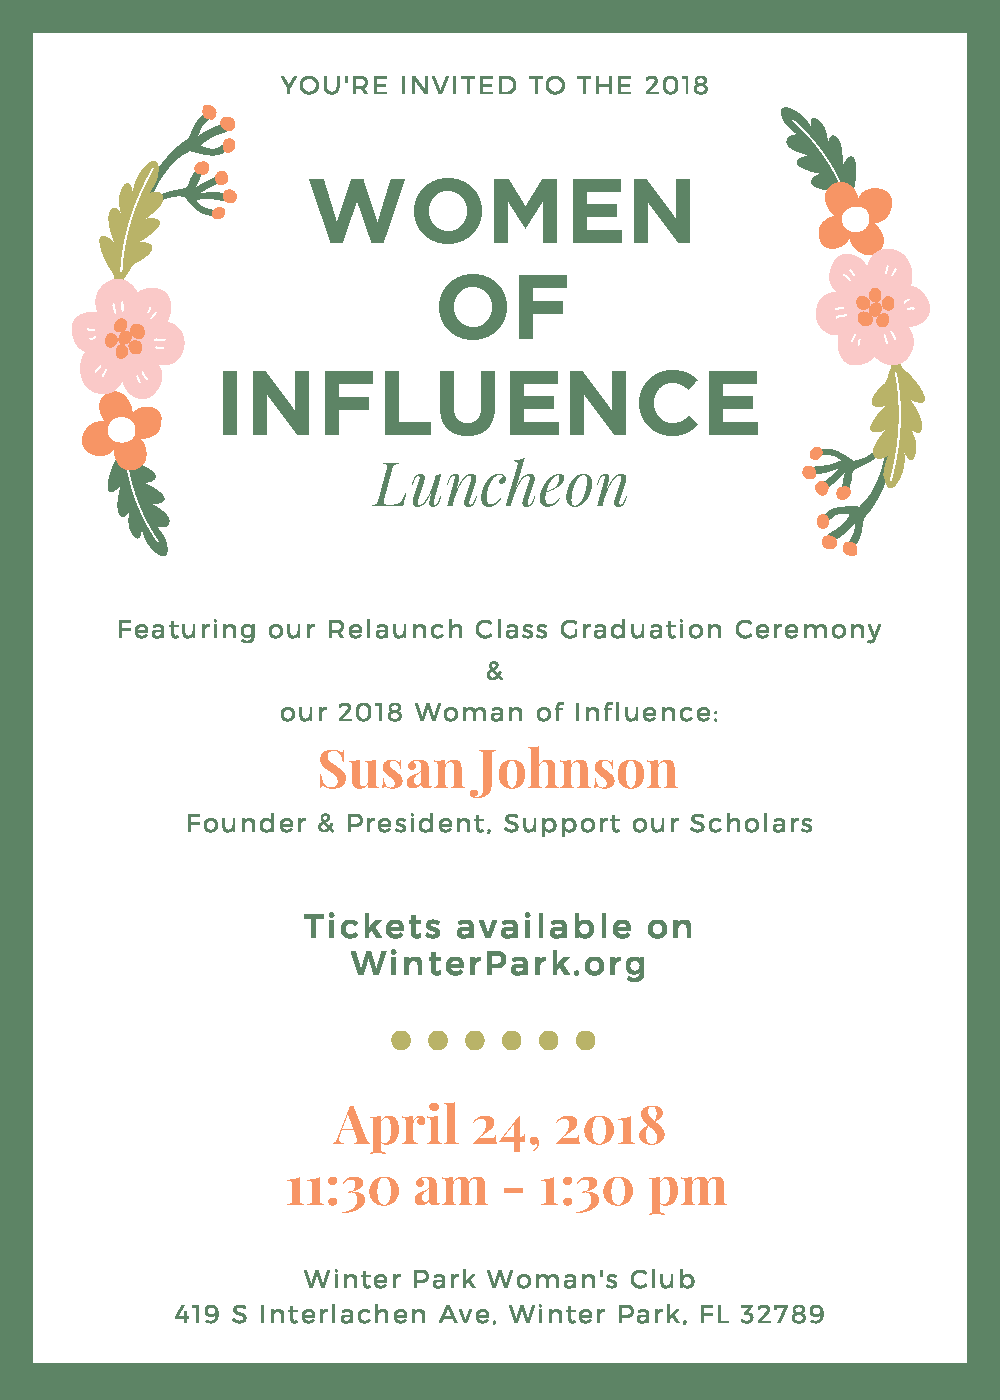 Women-of-Influence-luncheon-invitation.png